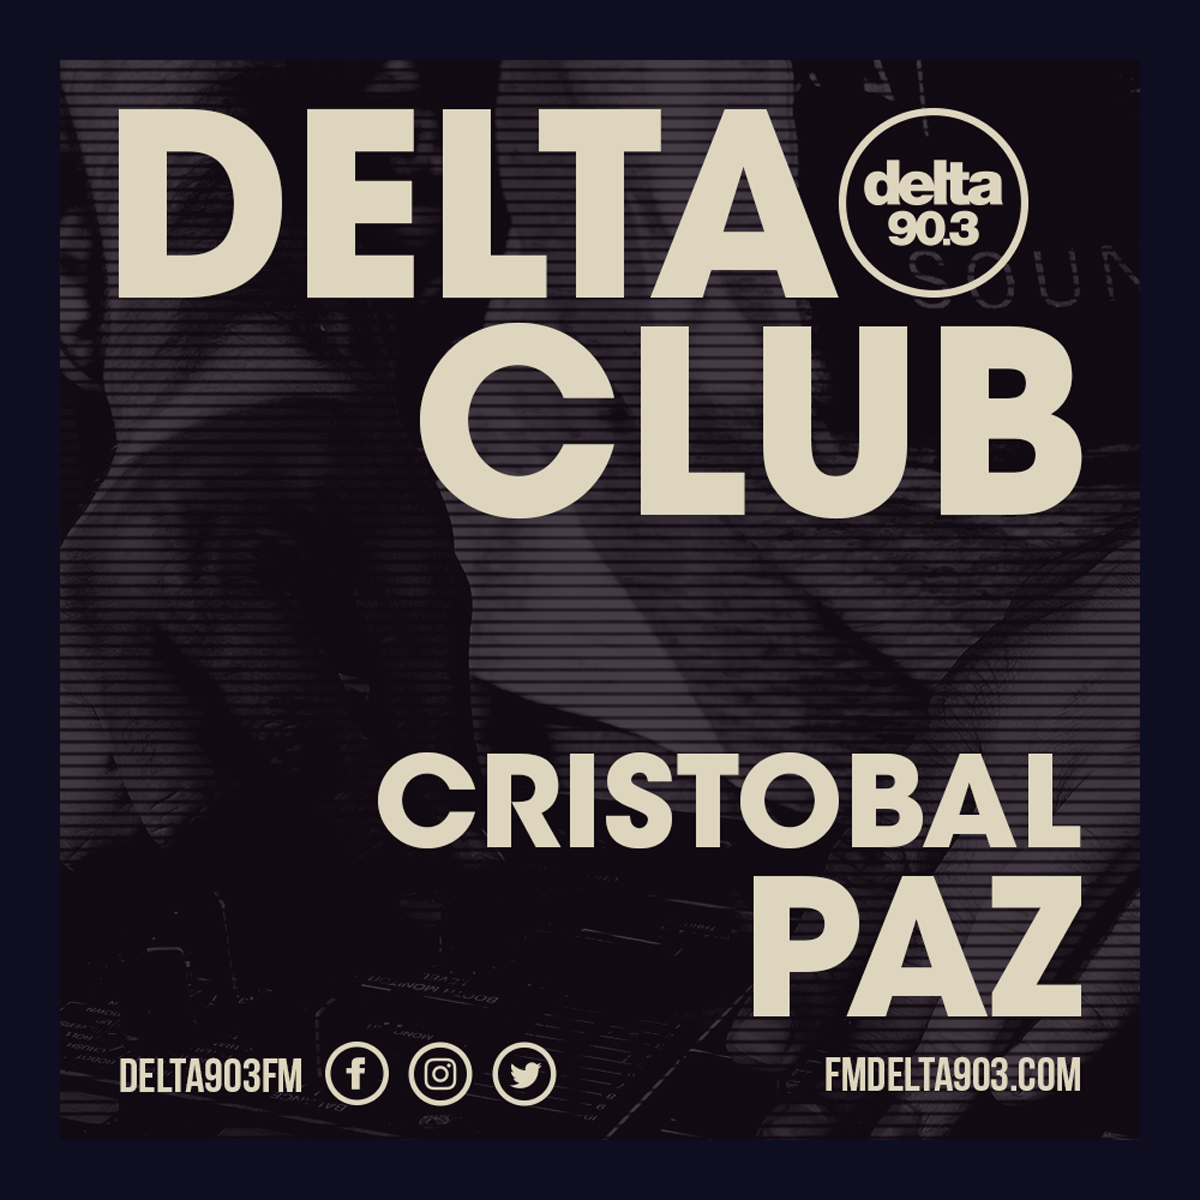 Delta Podcasts - Delta Club presents Cristobal Paz (26.06.2018)